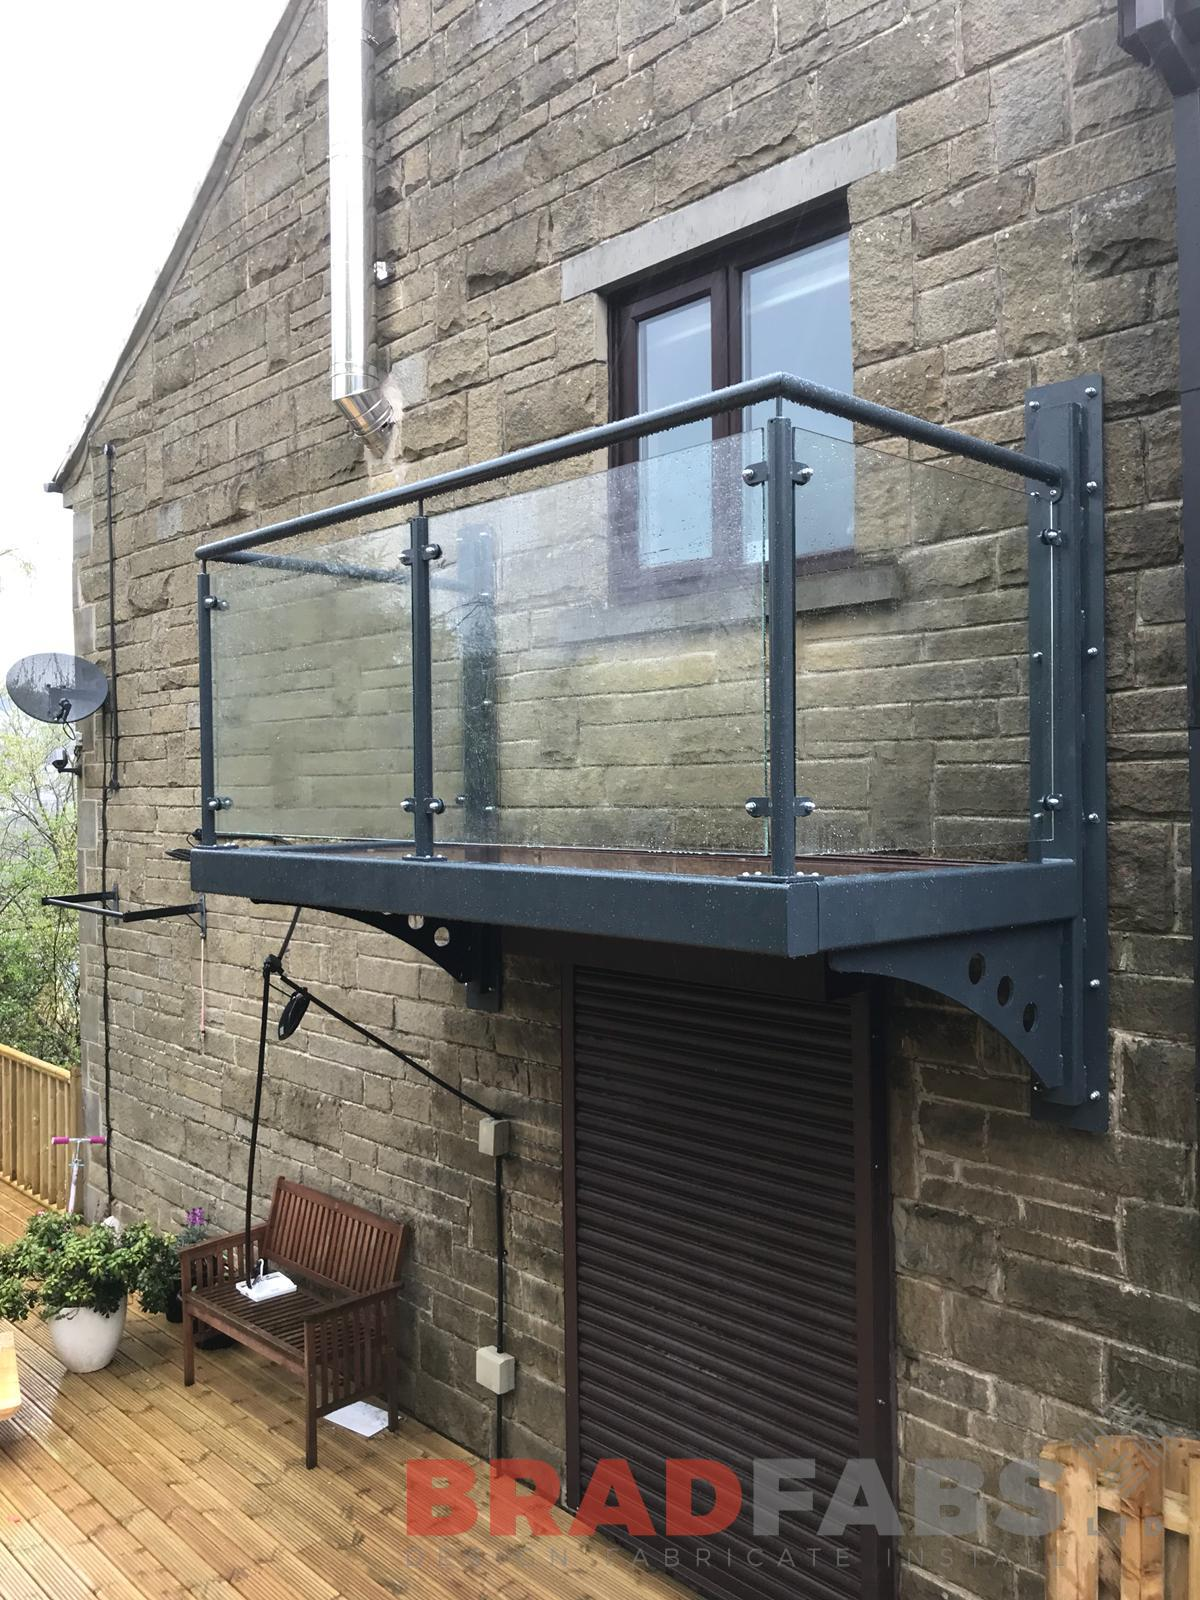 Cantilevered balcony with glass balustrade designed, manufactured and installed by Bradfabs